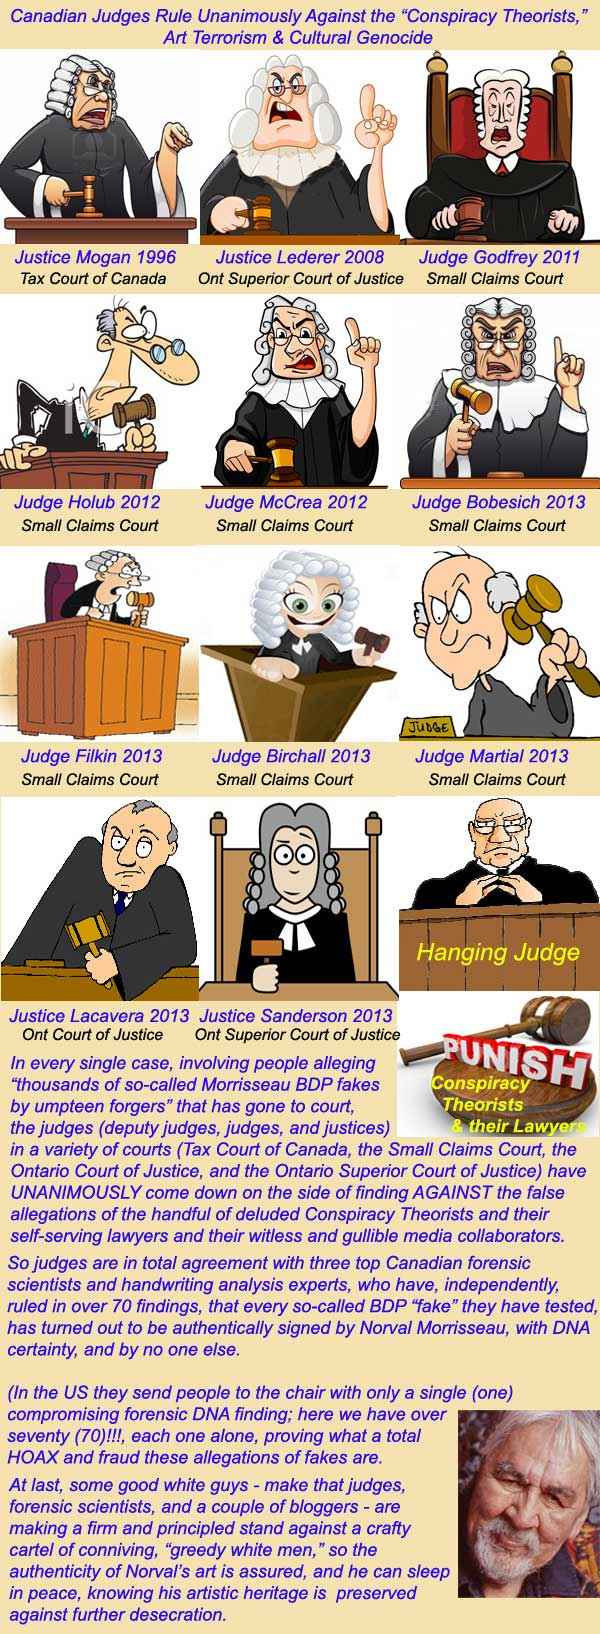 For the Good Guys 11 Judges; For the Bad Guys 1 Hanging Judge